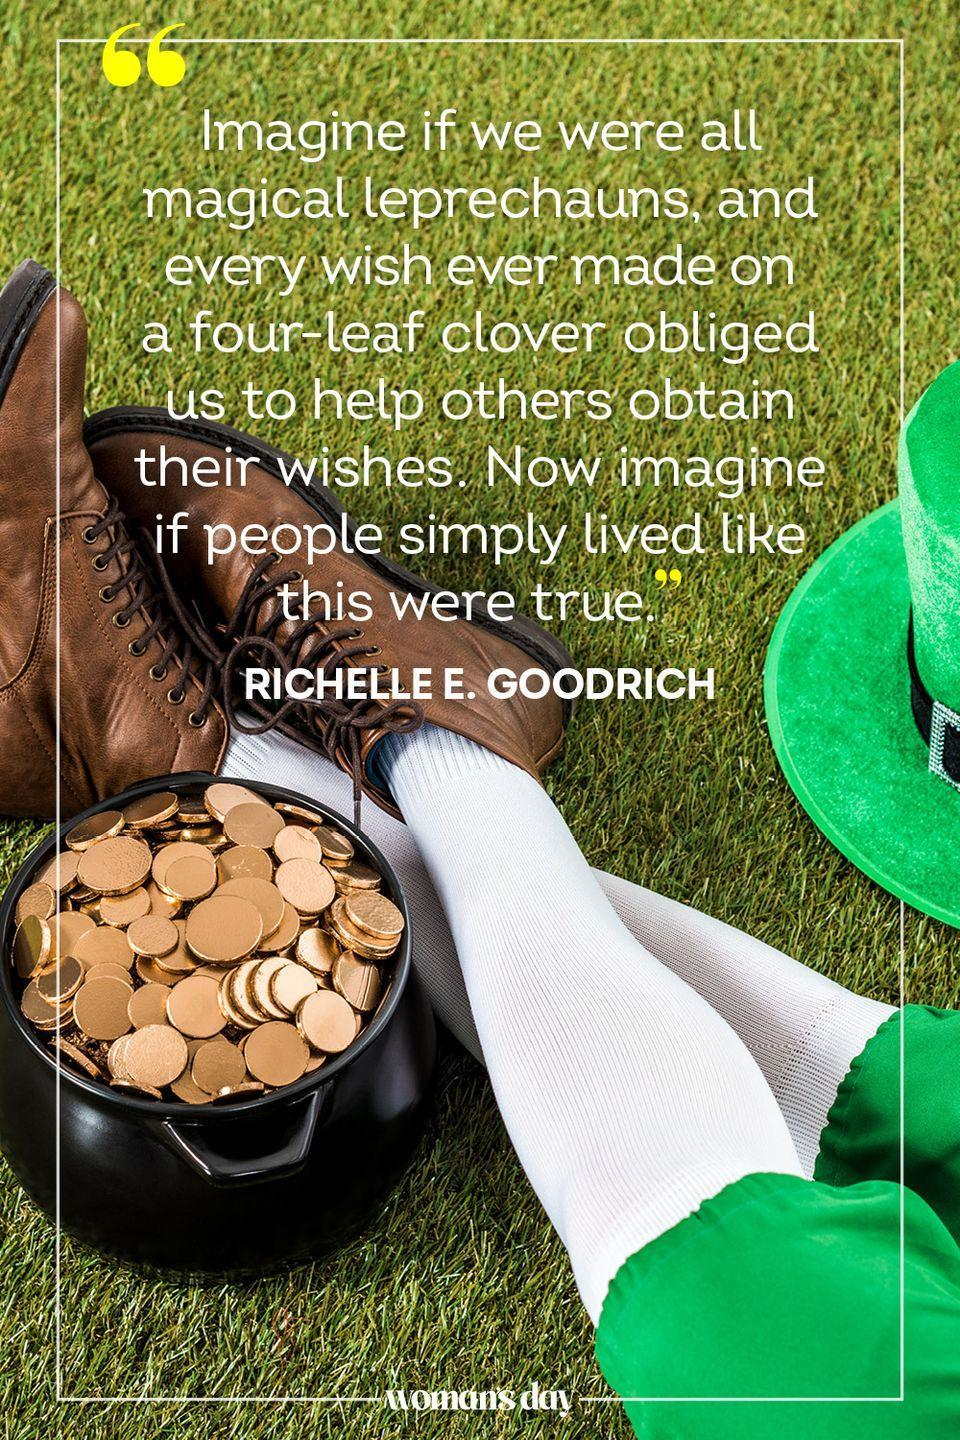 """<p>""""Imagine if we were all magical leprechauns, and every wish ever made on a four-leaf clover obliged us to help others obtain their wishes. Now imagine if people simply lived like this were true."""" — Richelle E. Goodrich</p>"""